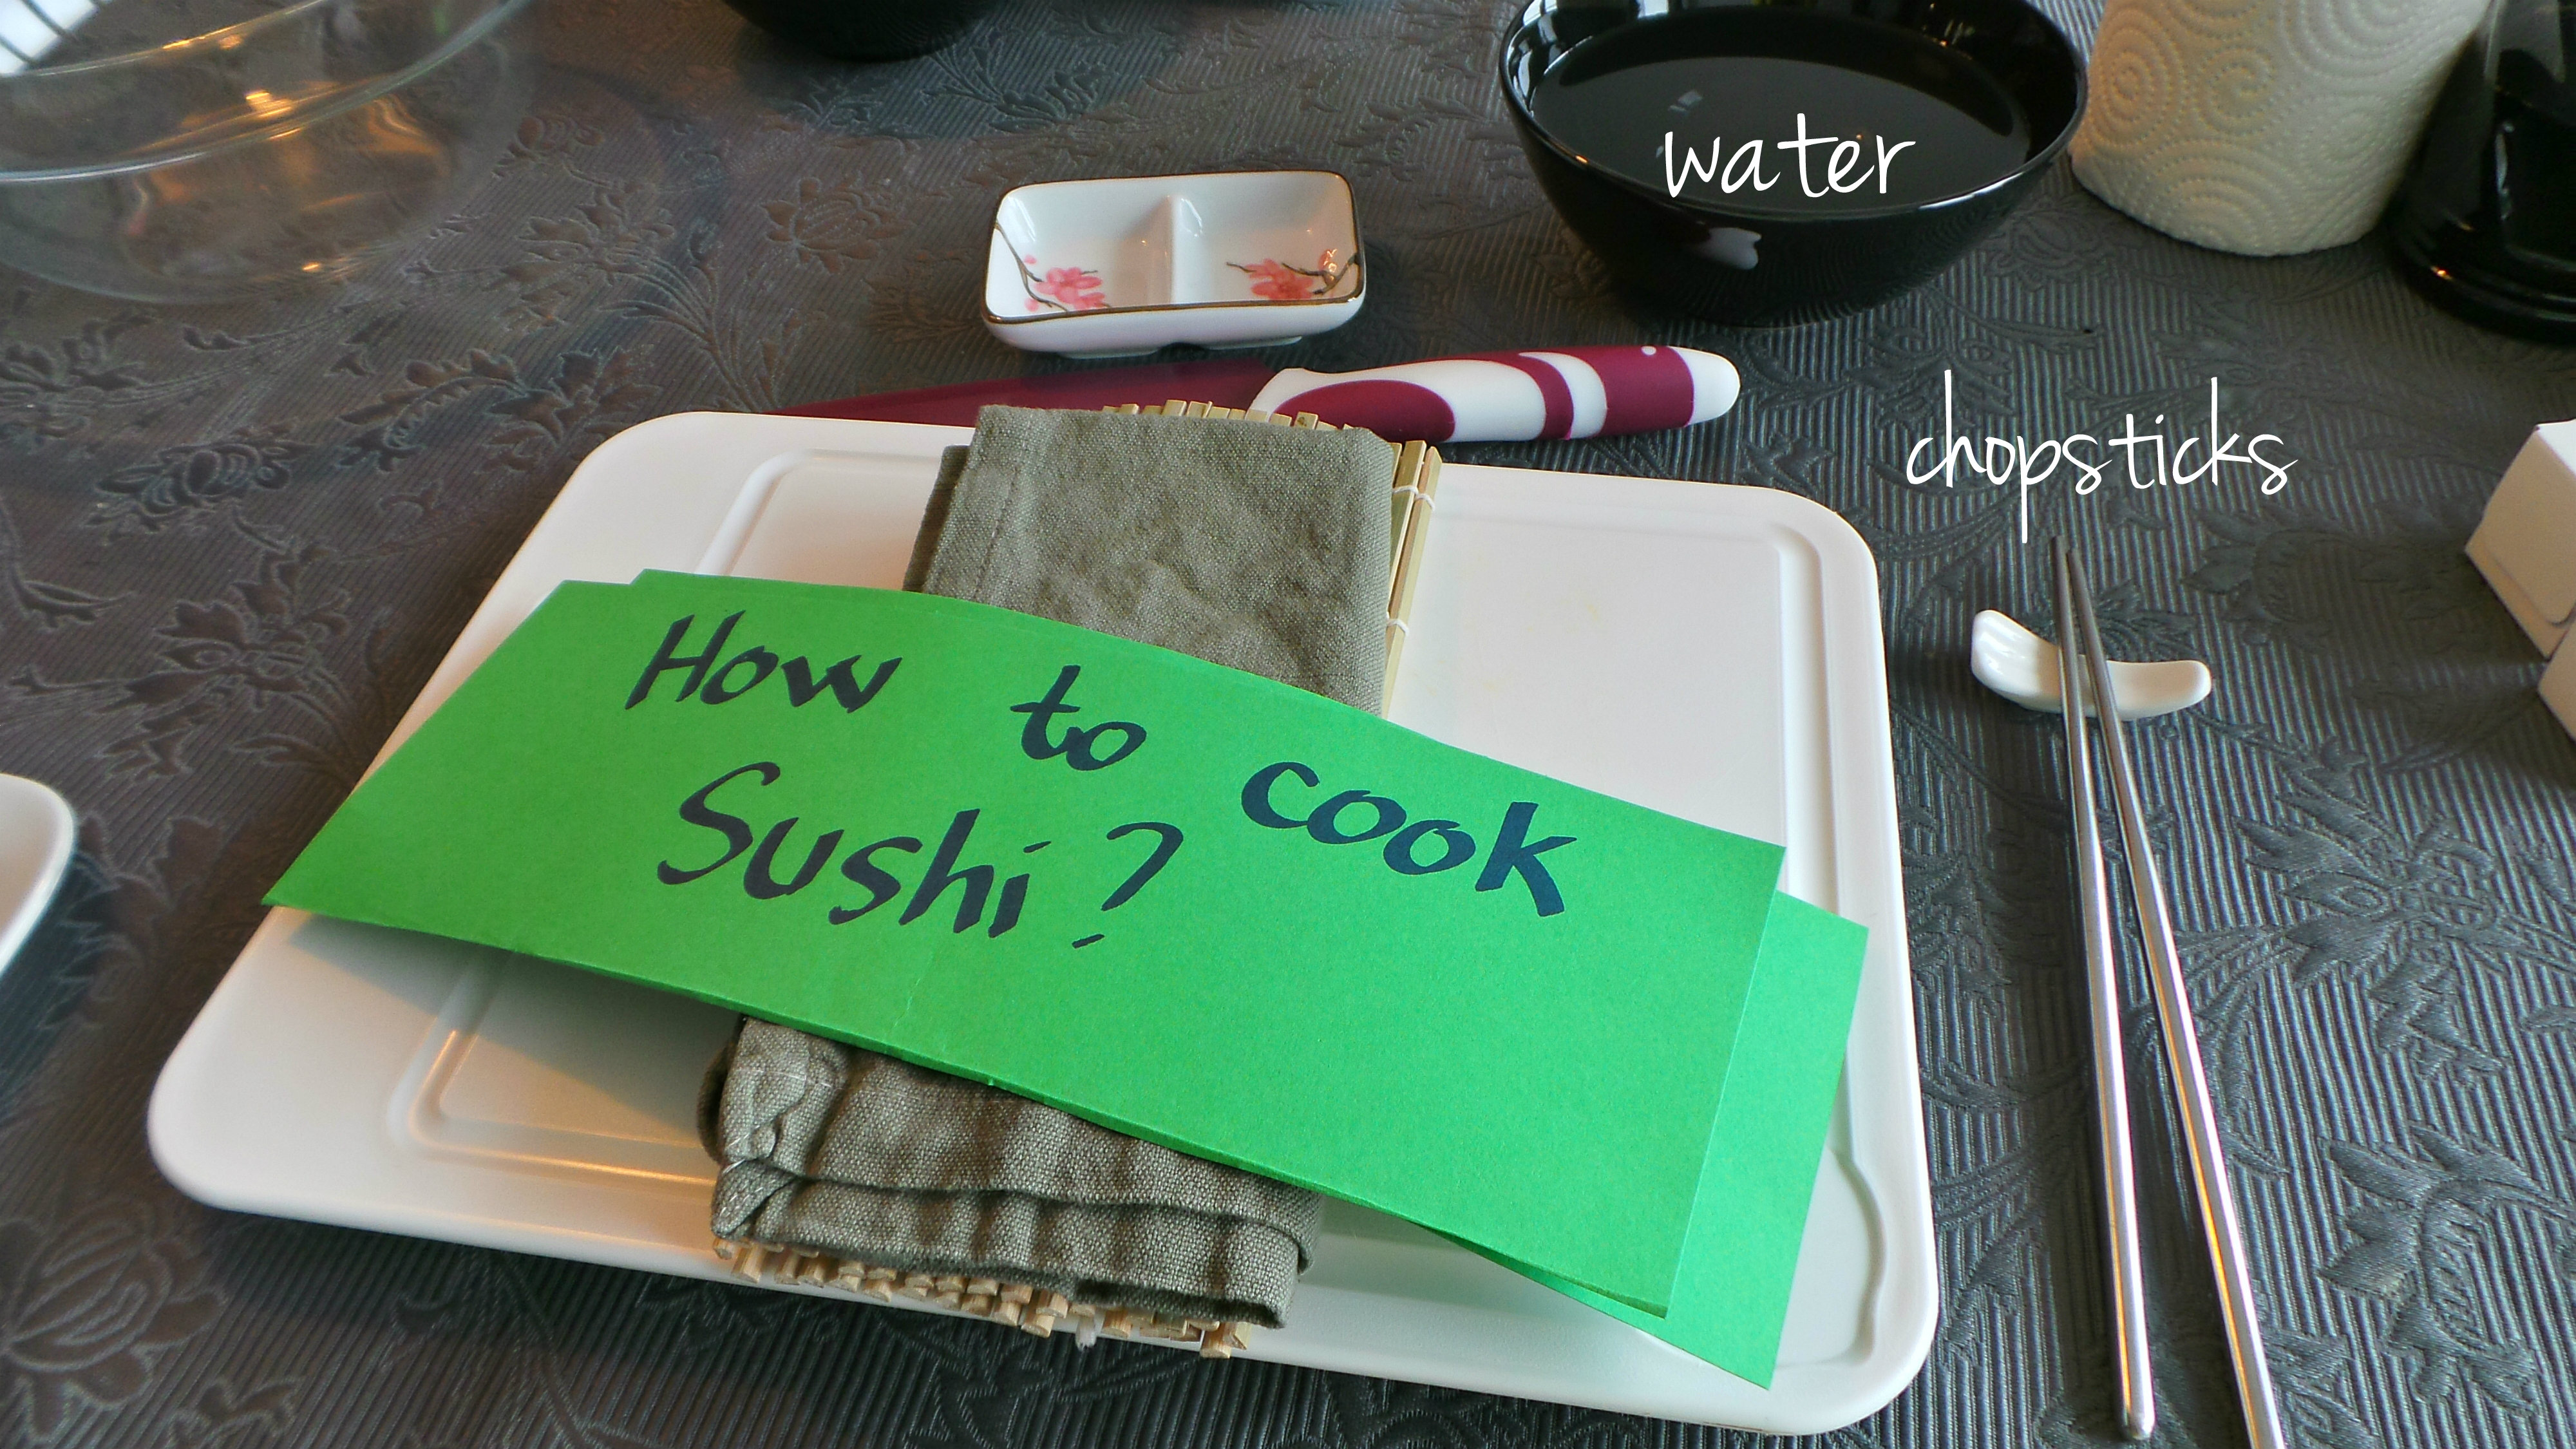 sushiworkshop_withlocals_water_chopsticks